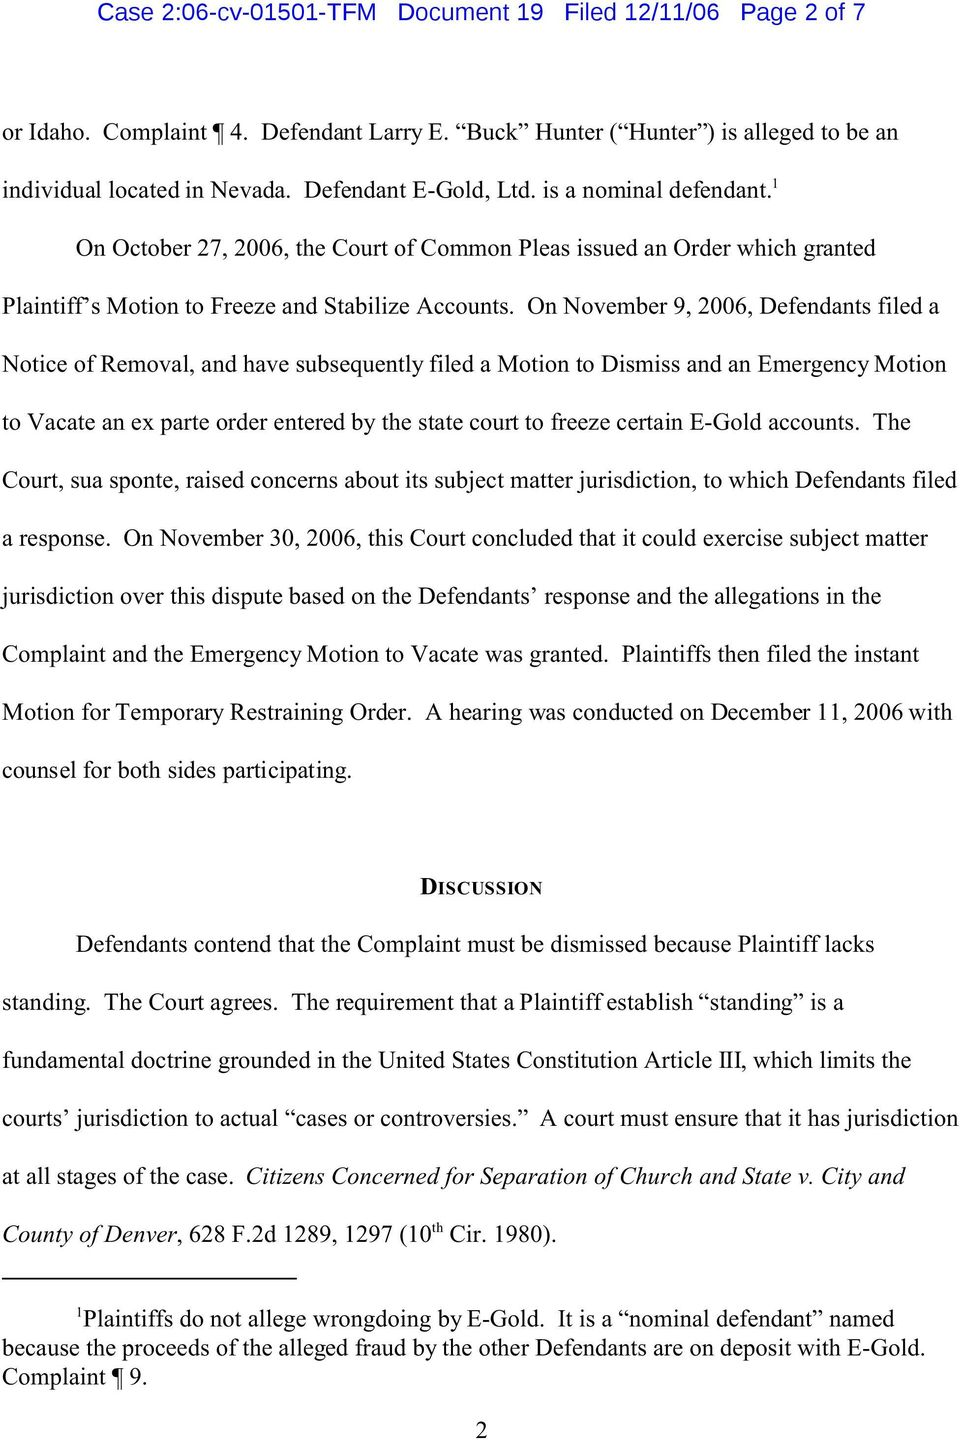 On November 9, 2006, Defendants filed a Notice of Removal, and have subsequently filed a Motion to Dismiss and an Emergency Motion to Vacate an ex parte order entered by the state court to freeze